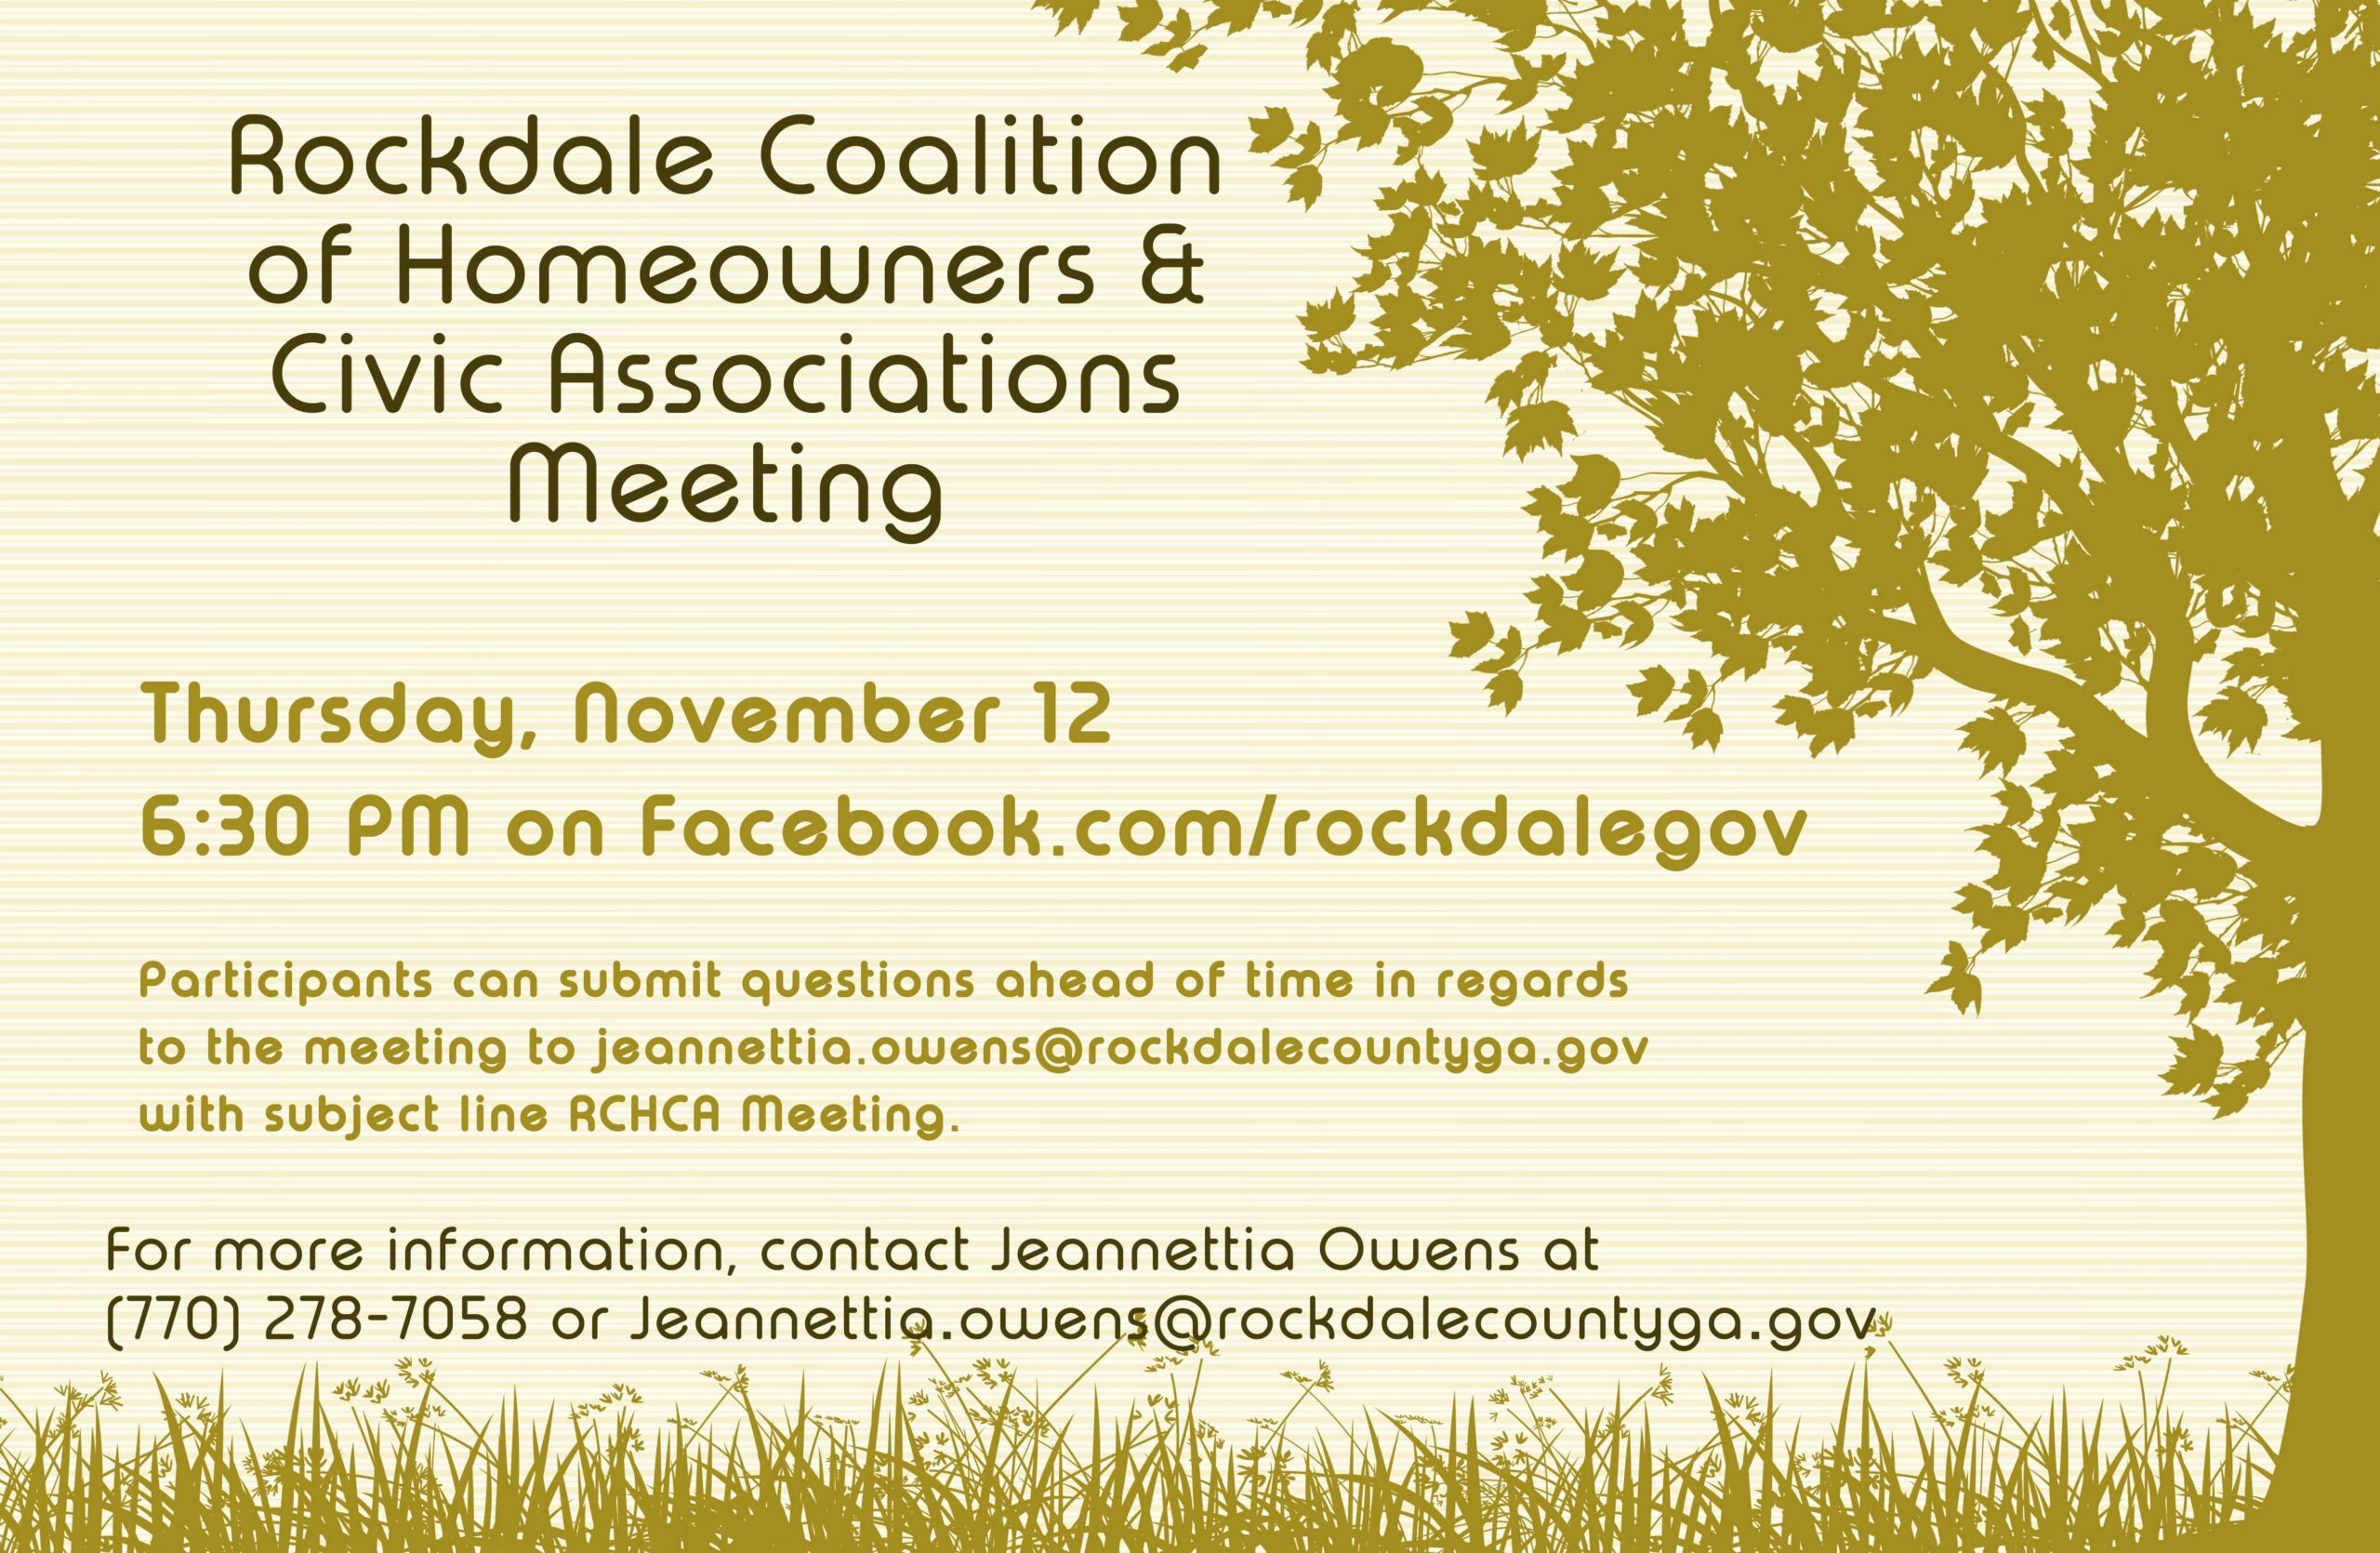 Virtual Rockdale Coalition of Homeowners and Civic Associations Meeting @ Rockdale County Official Facebook Page